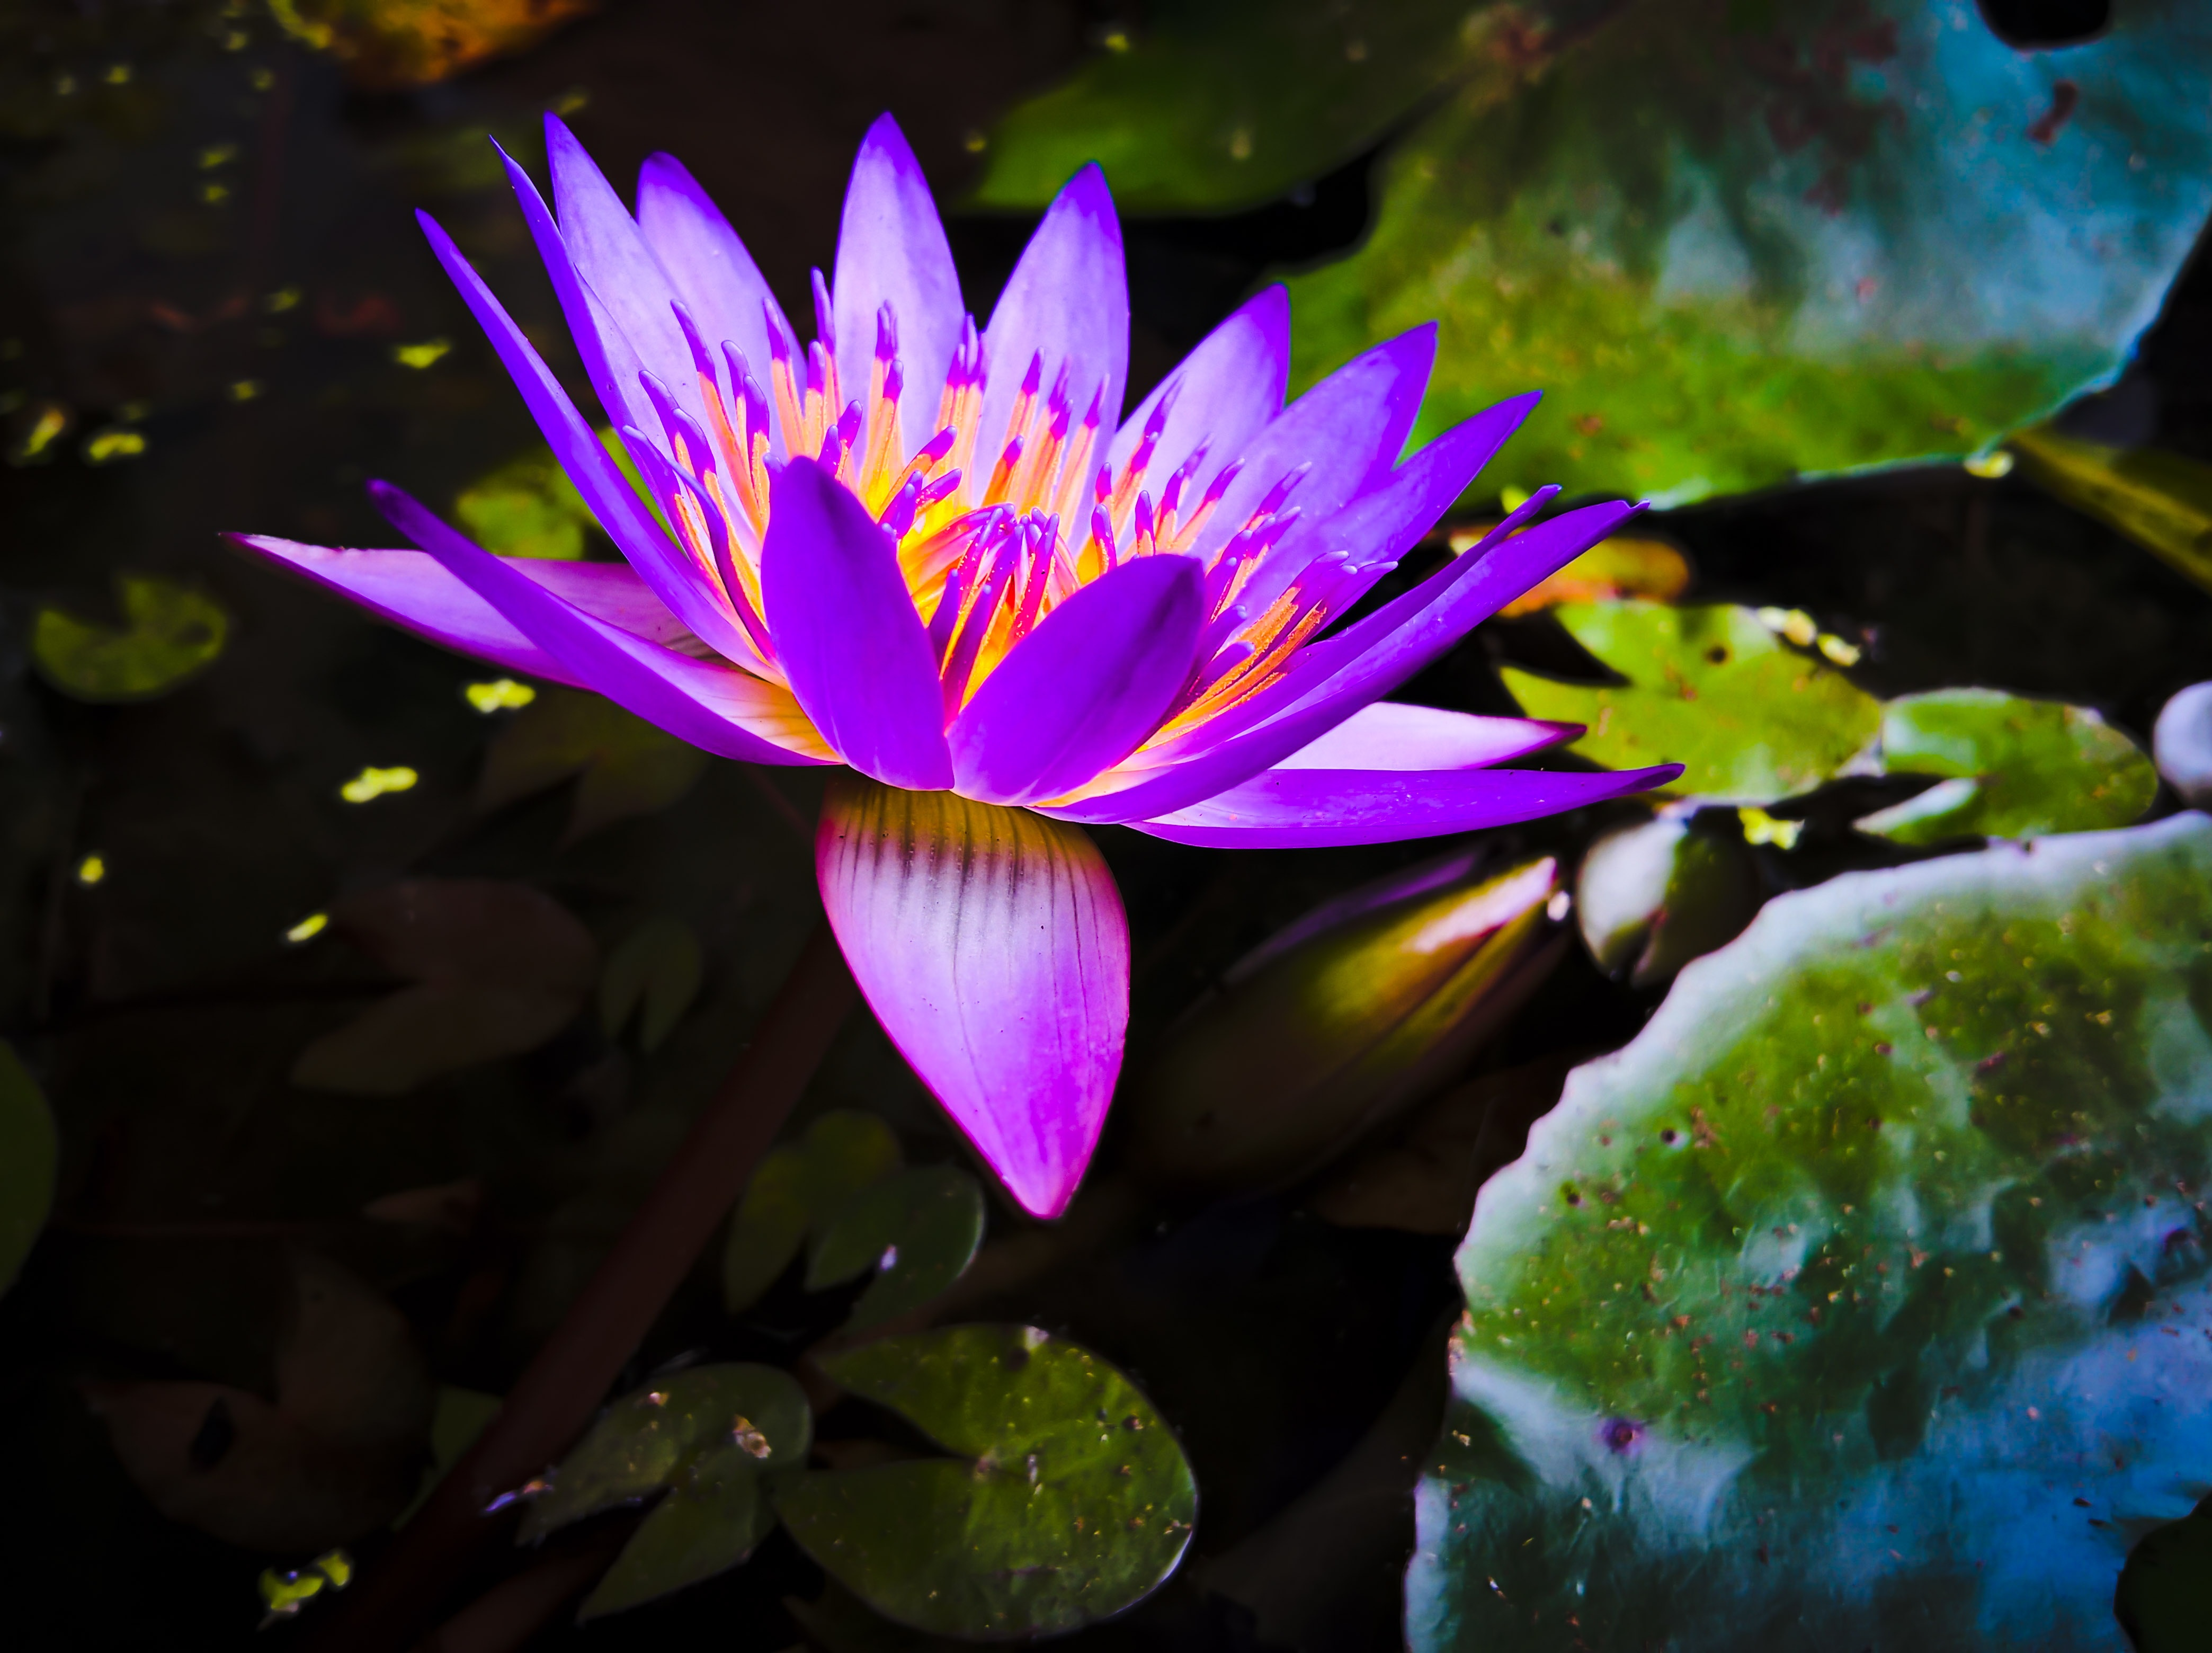 Free photo purple lily pond lily flower non commercial free free images purple lilies edit lily 4176x3120 1372205 free izmirmasajfo